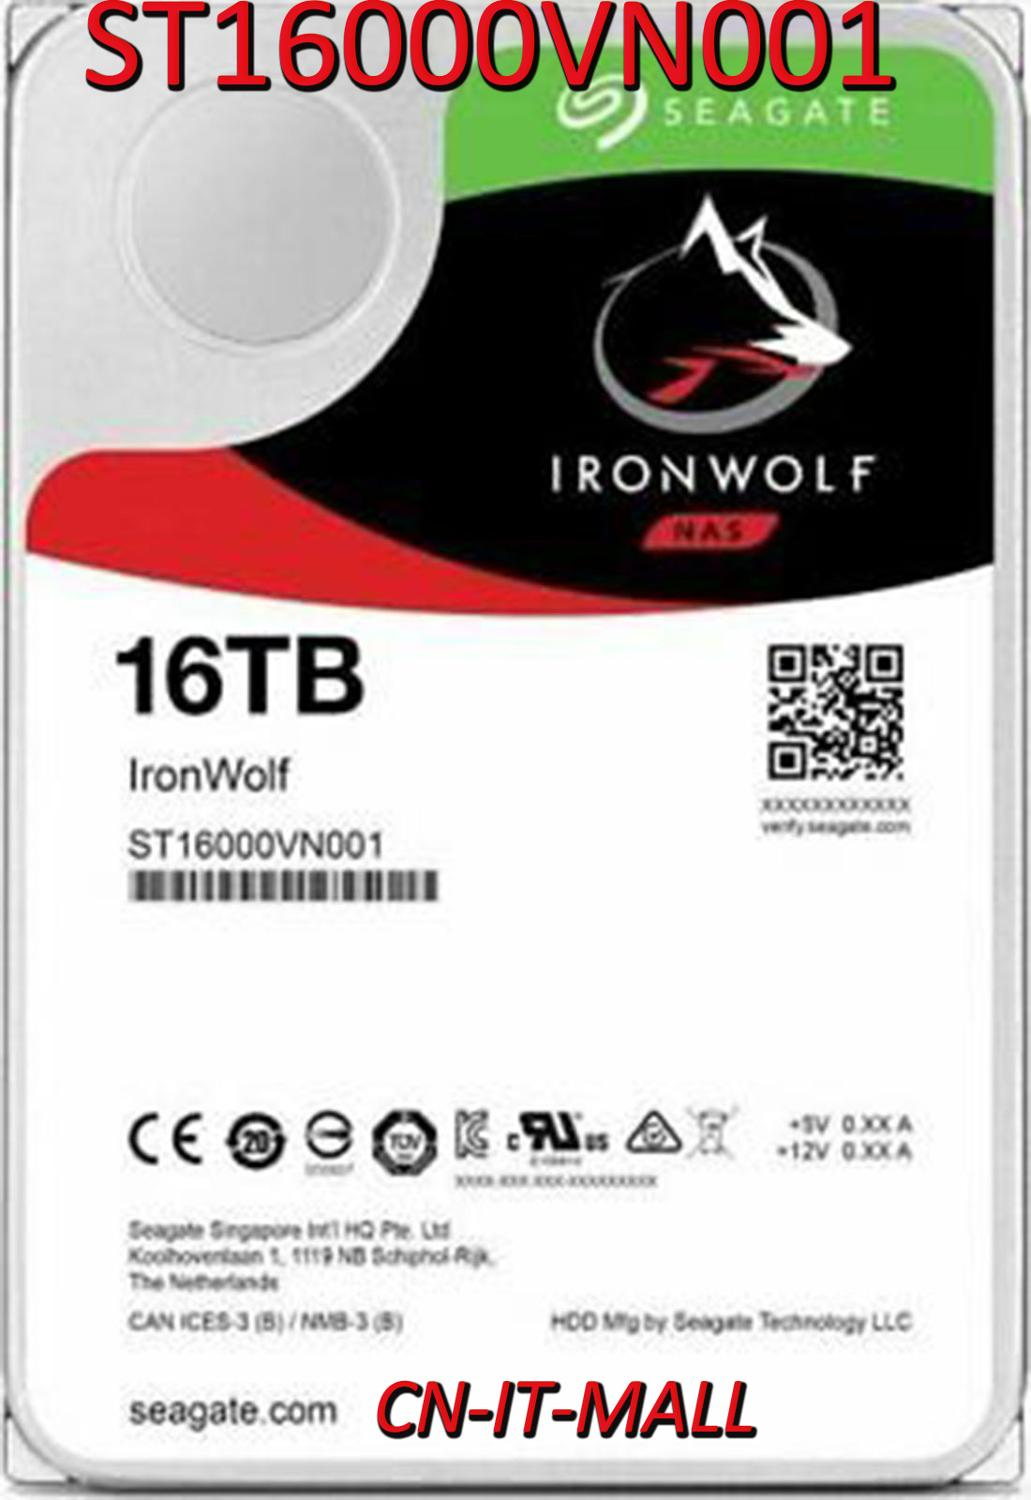 Seagate IronWolf ST16000VN001 16TB NAS 7200 RPM 256MB Cache SATA 6.0Gb/s 3.5